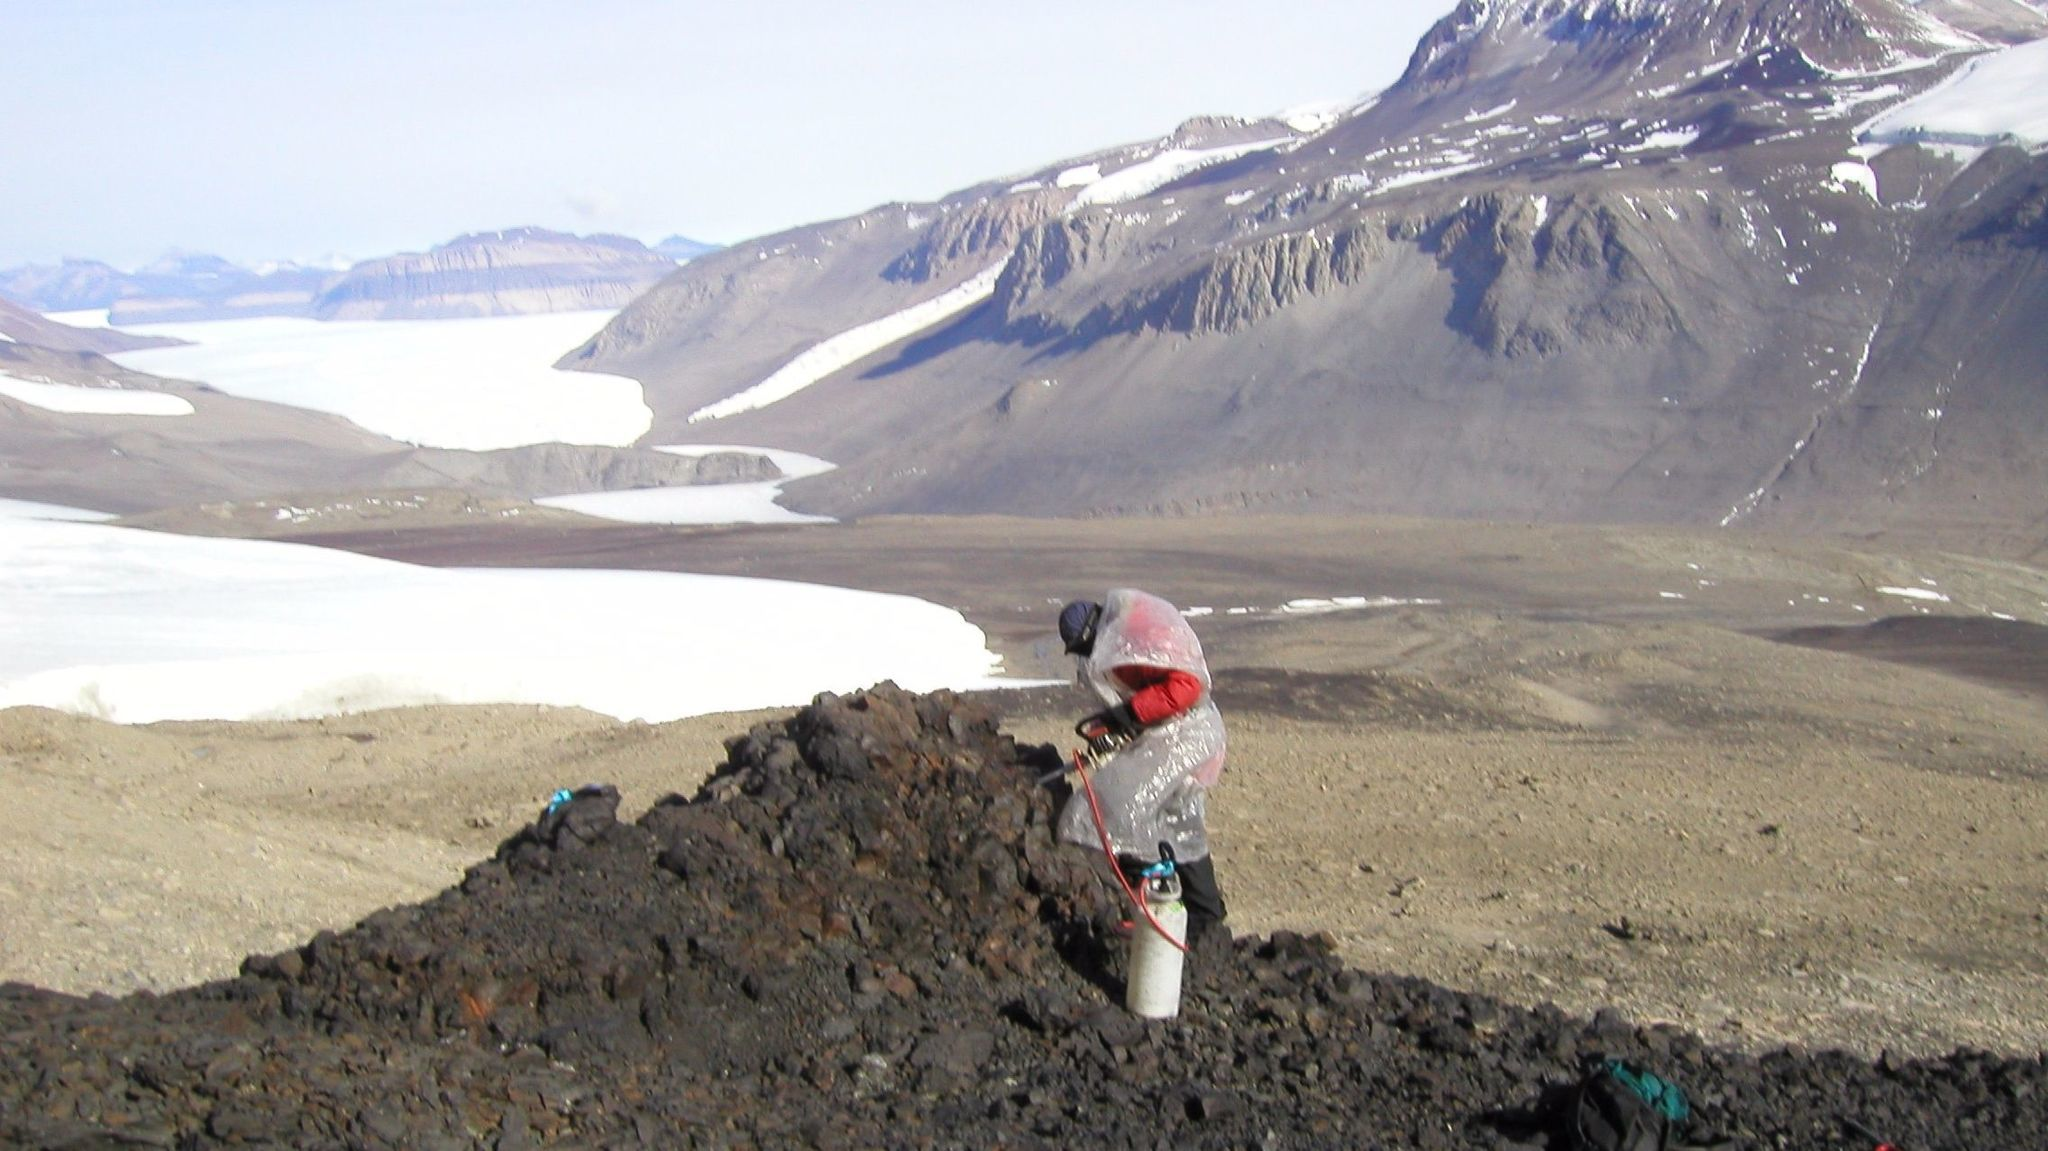 A scientist drills into a lava flow in Taylor Valley to study the ancient magnetic field.